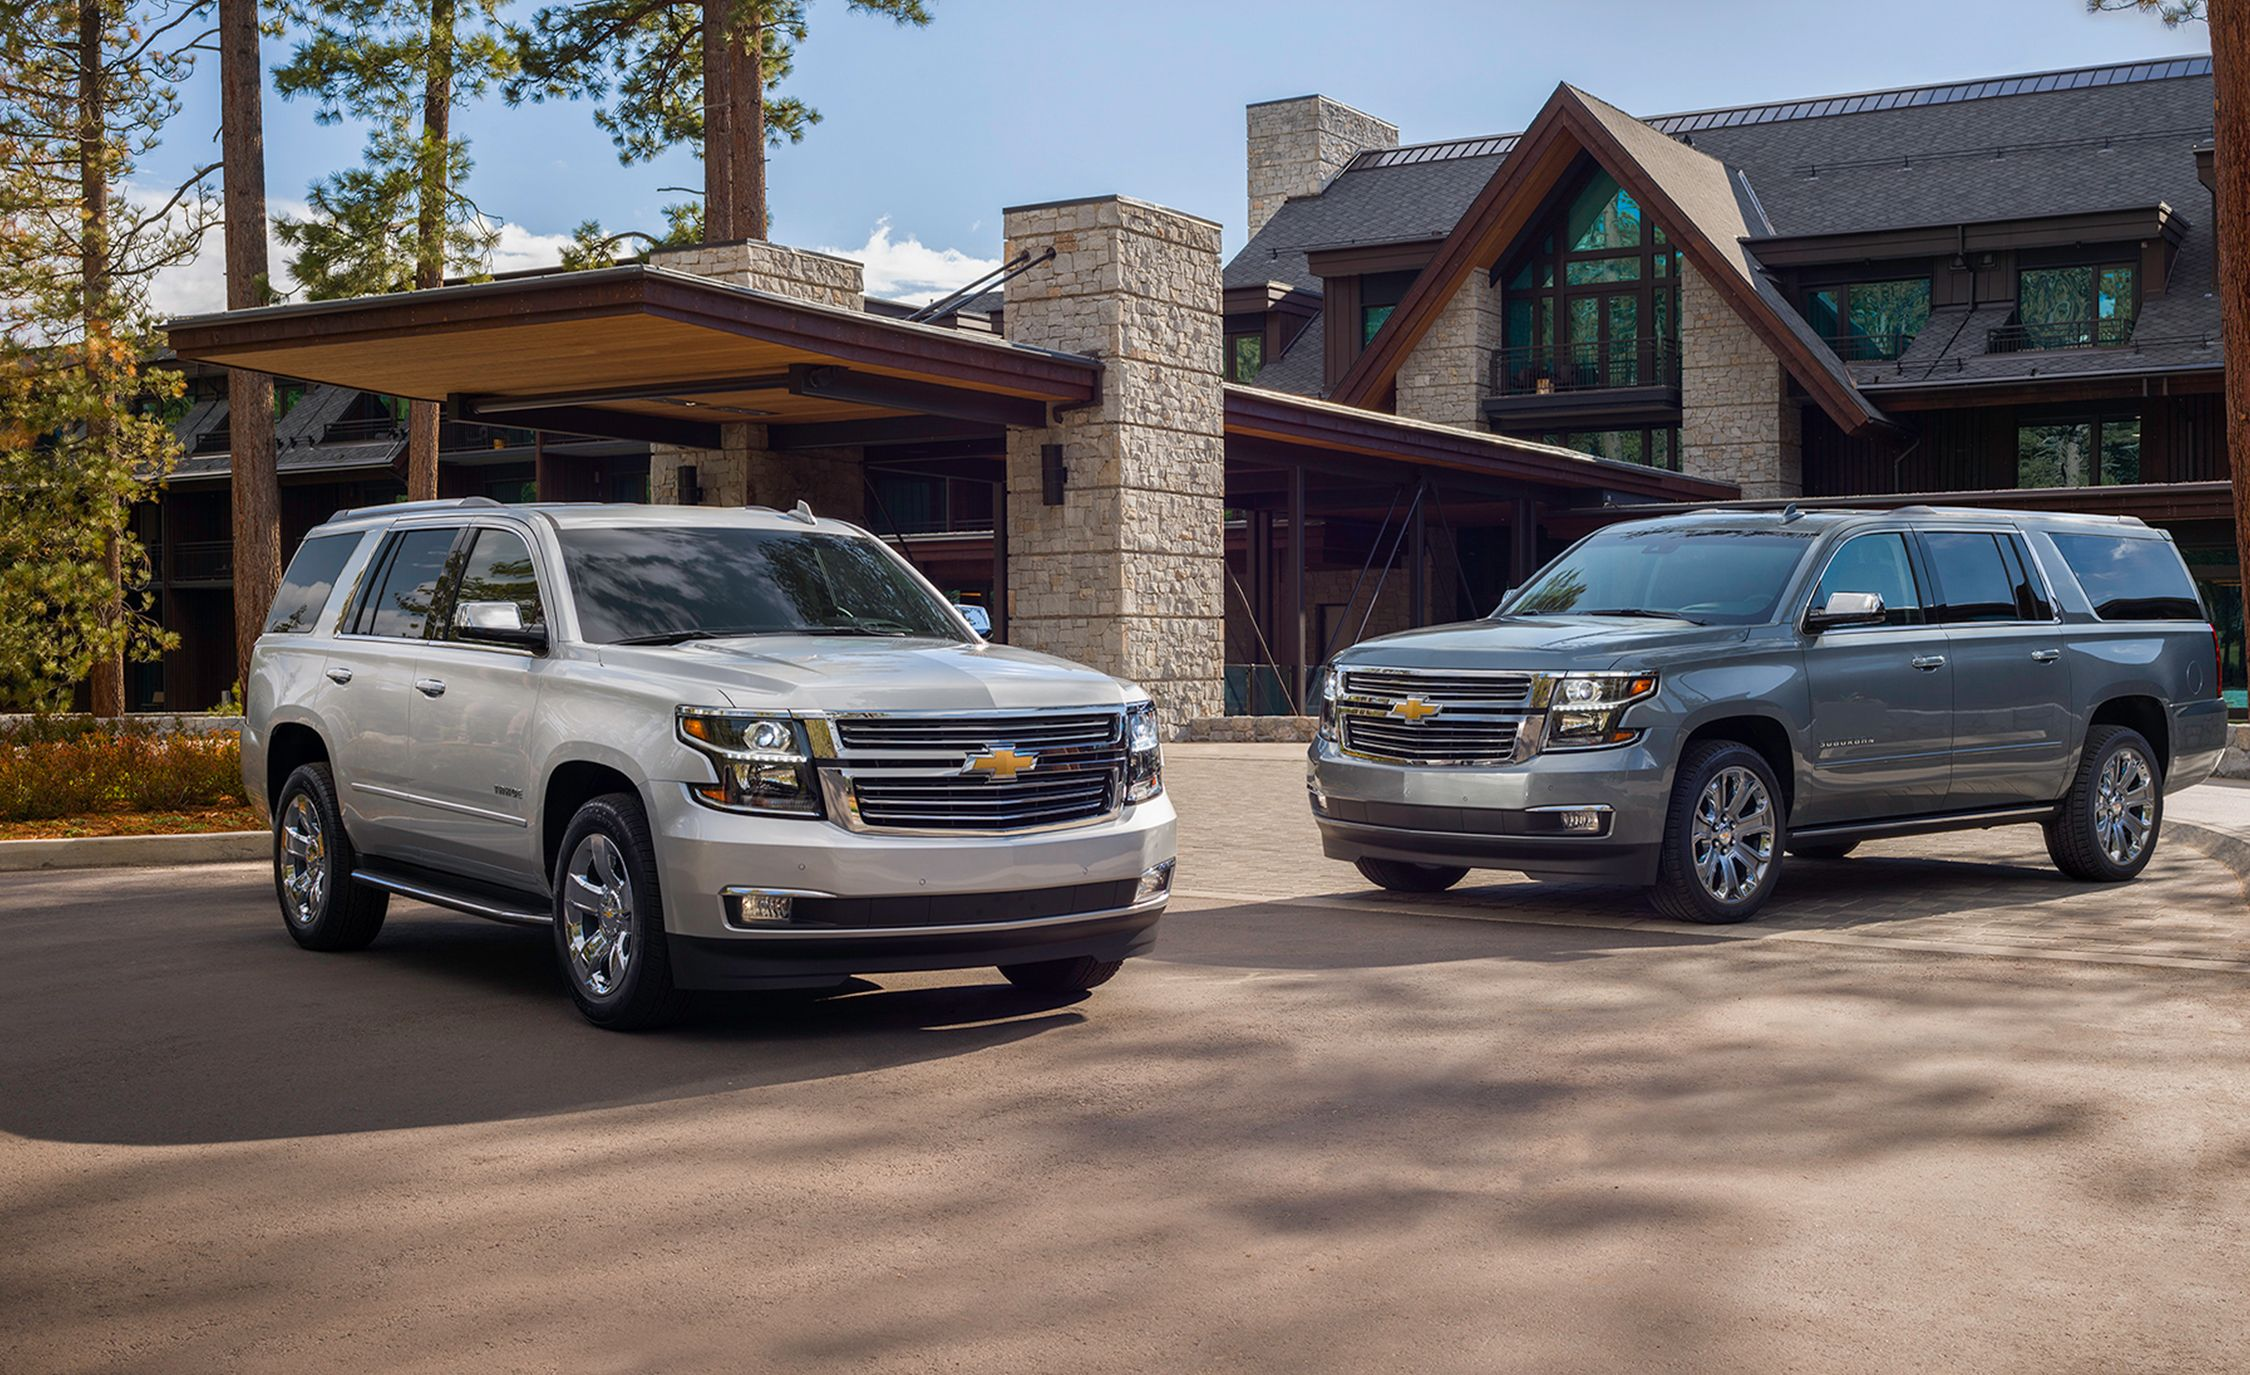 2019 Chevrolet Suburban And Tahoe Premier Plus Pack A 6 2 Liter V 8